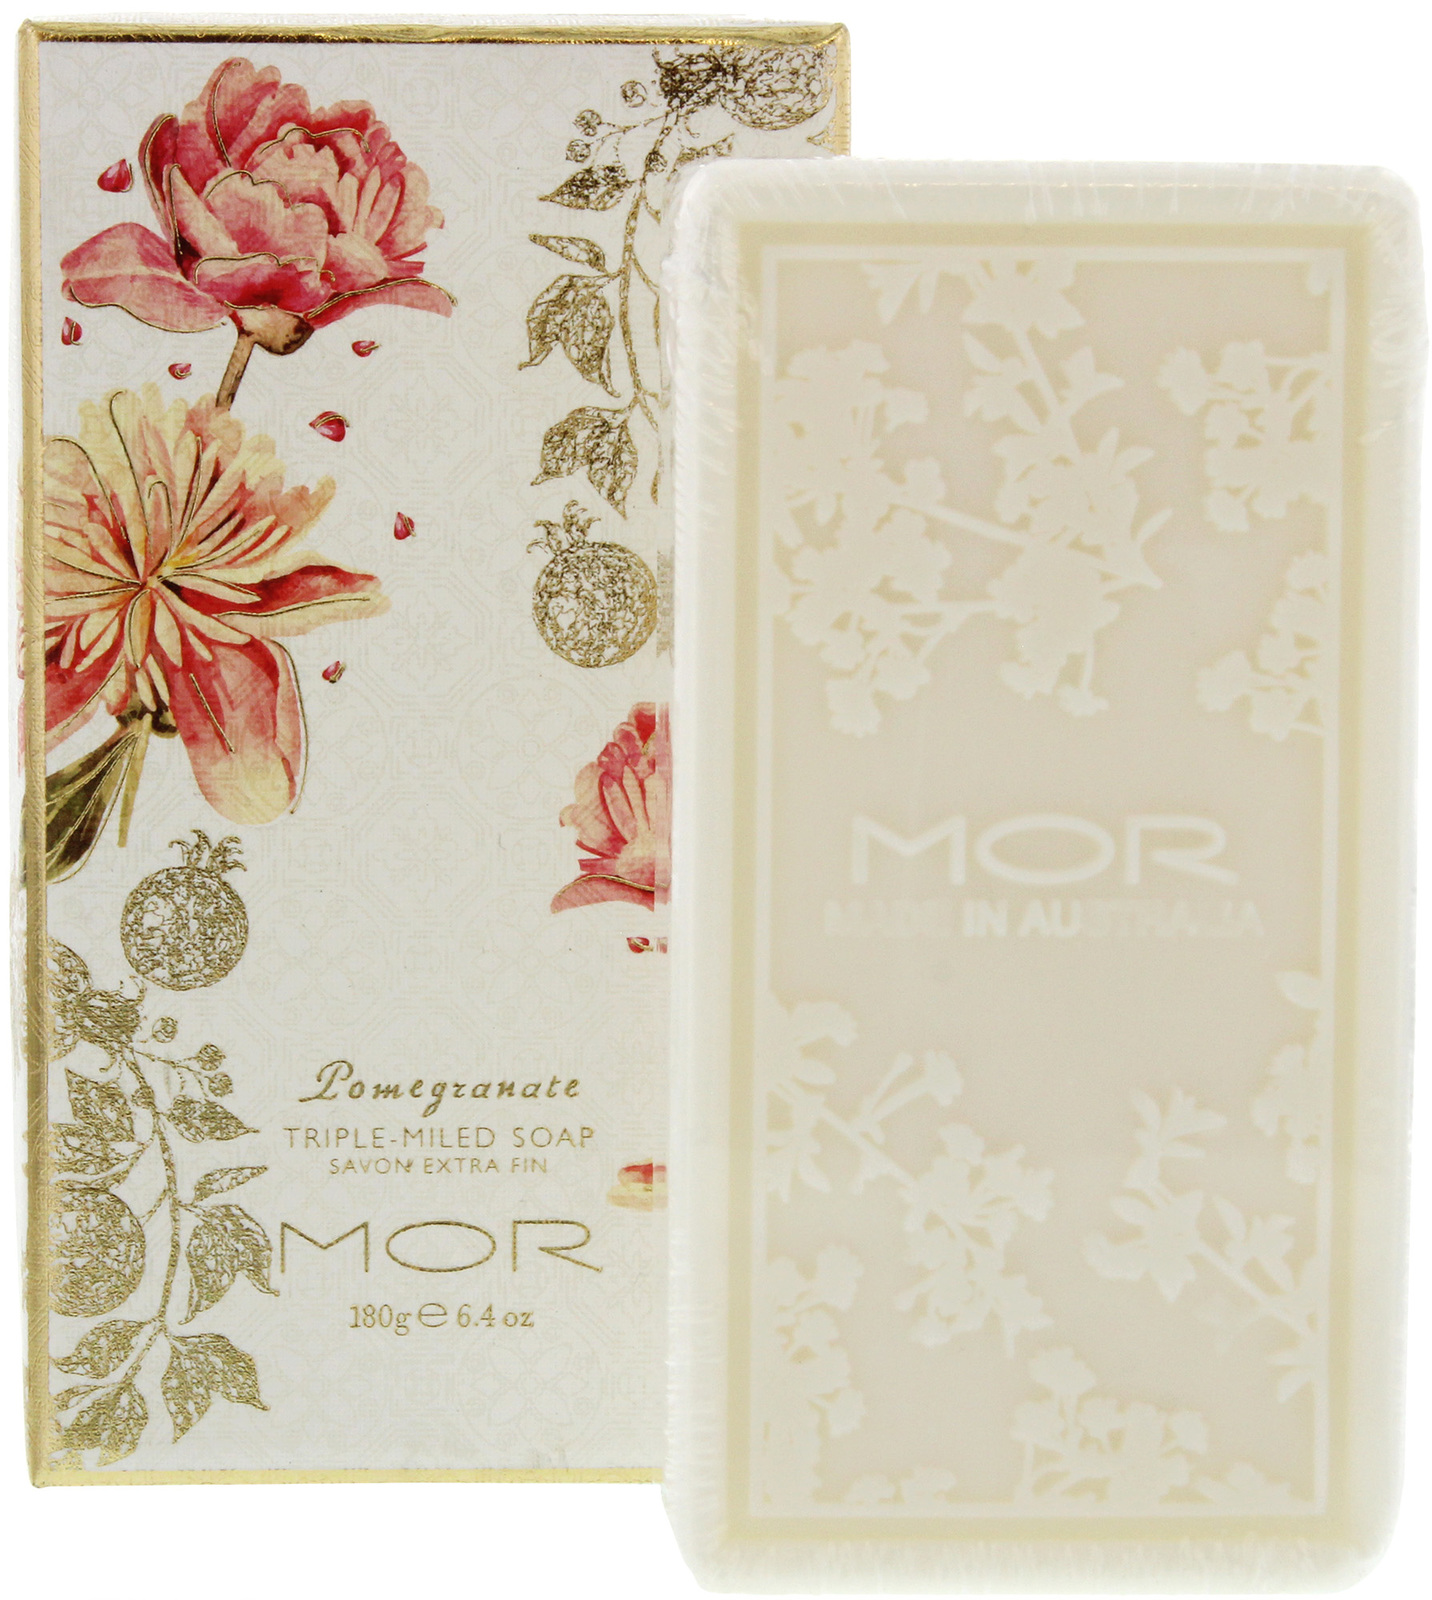 MOR Pomegranate Collection Triple Milled Soap (180g) image